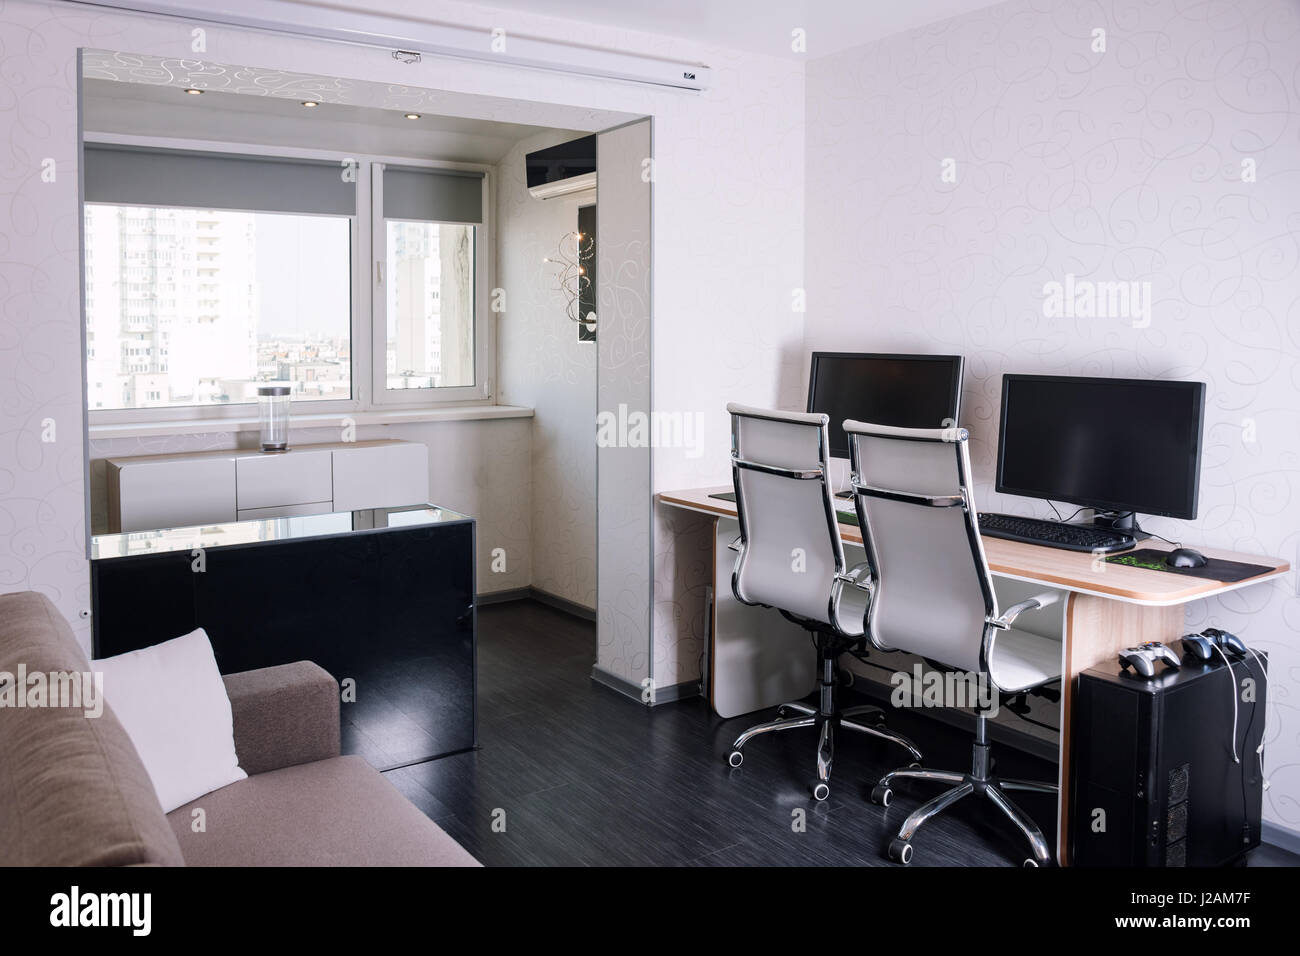 Interior of modern apartment with workplace Stock Photo